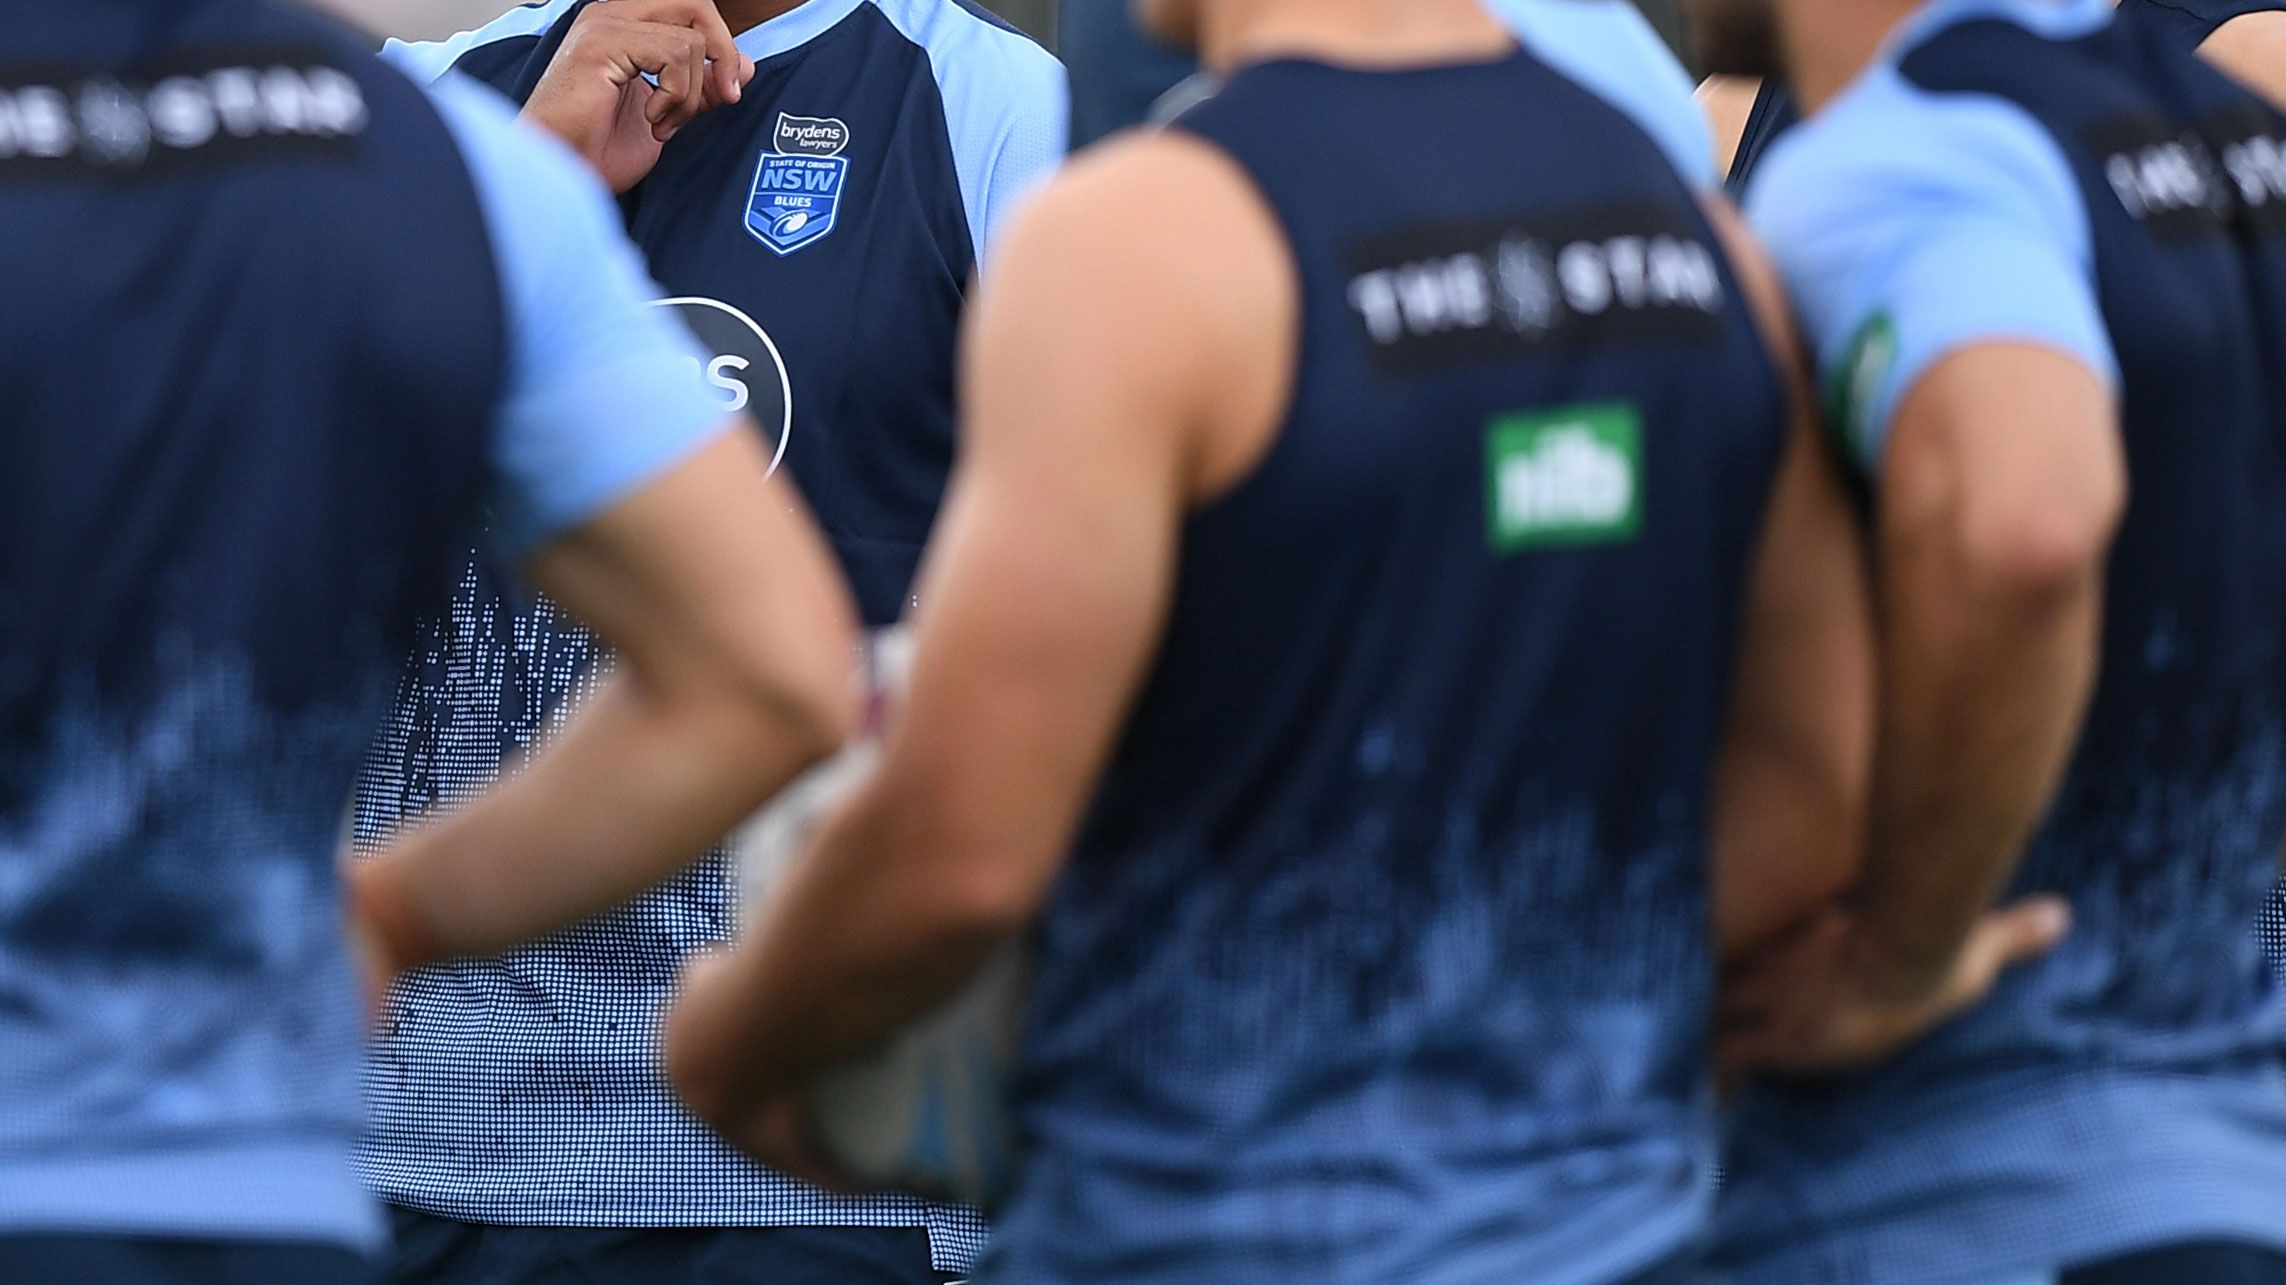 NSW Blues boss David Trodden says sex tape a police matter